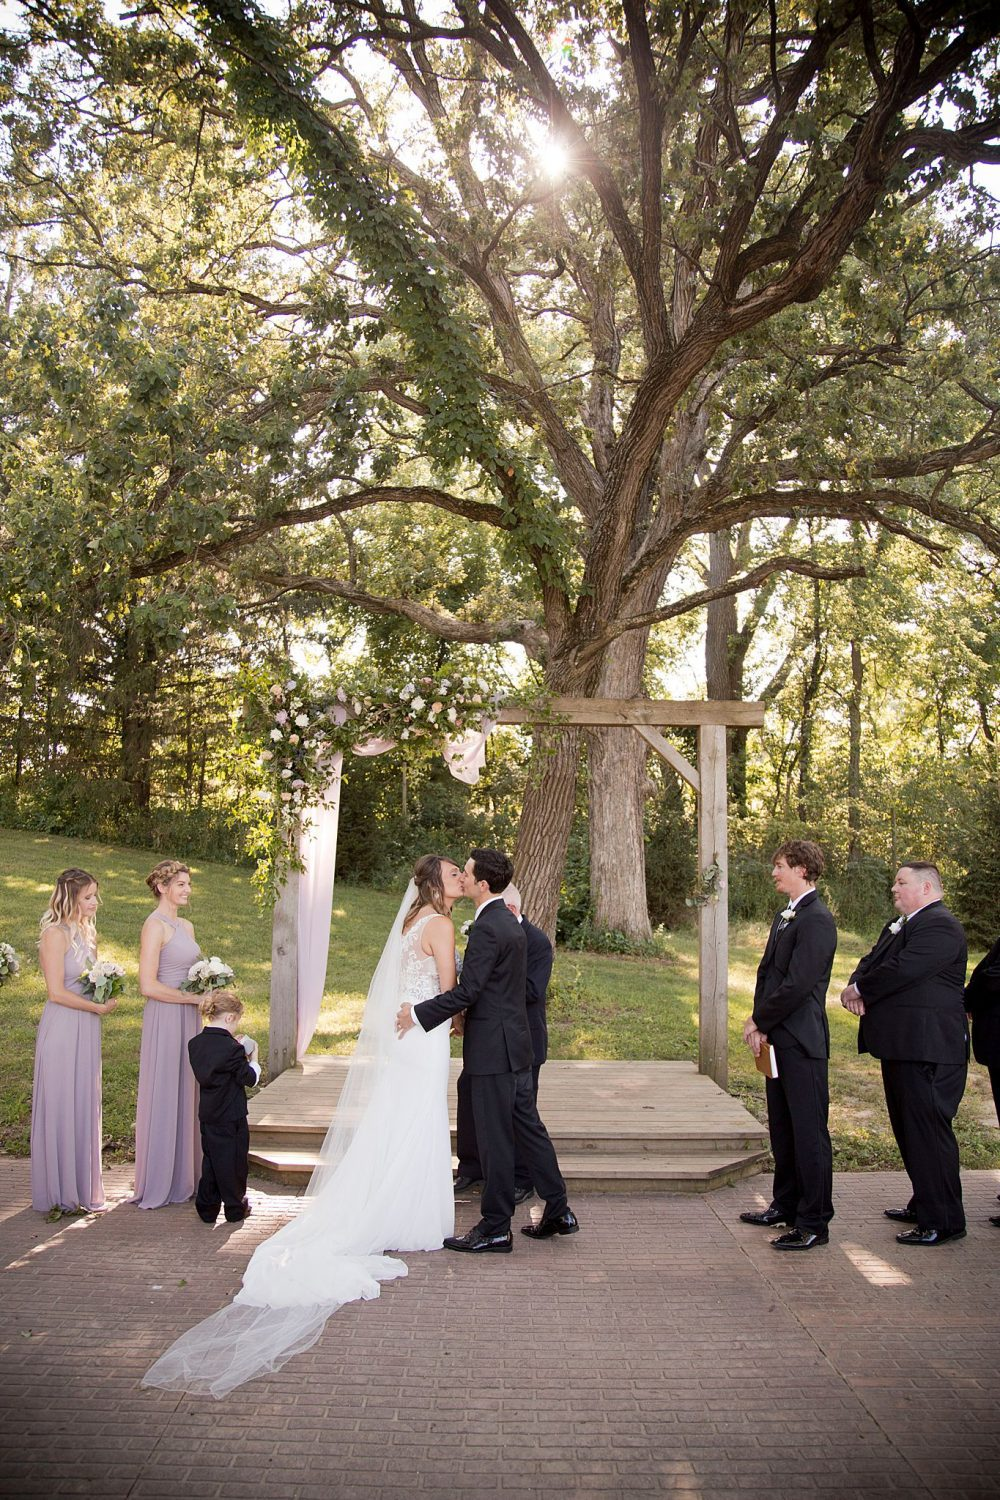 The first kiss under a giant oak tree at the outdoor ceremony site at Rapid Creek Cidery in Iowa City.